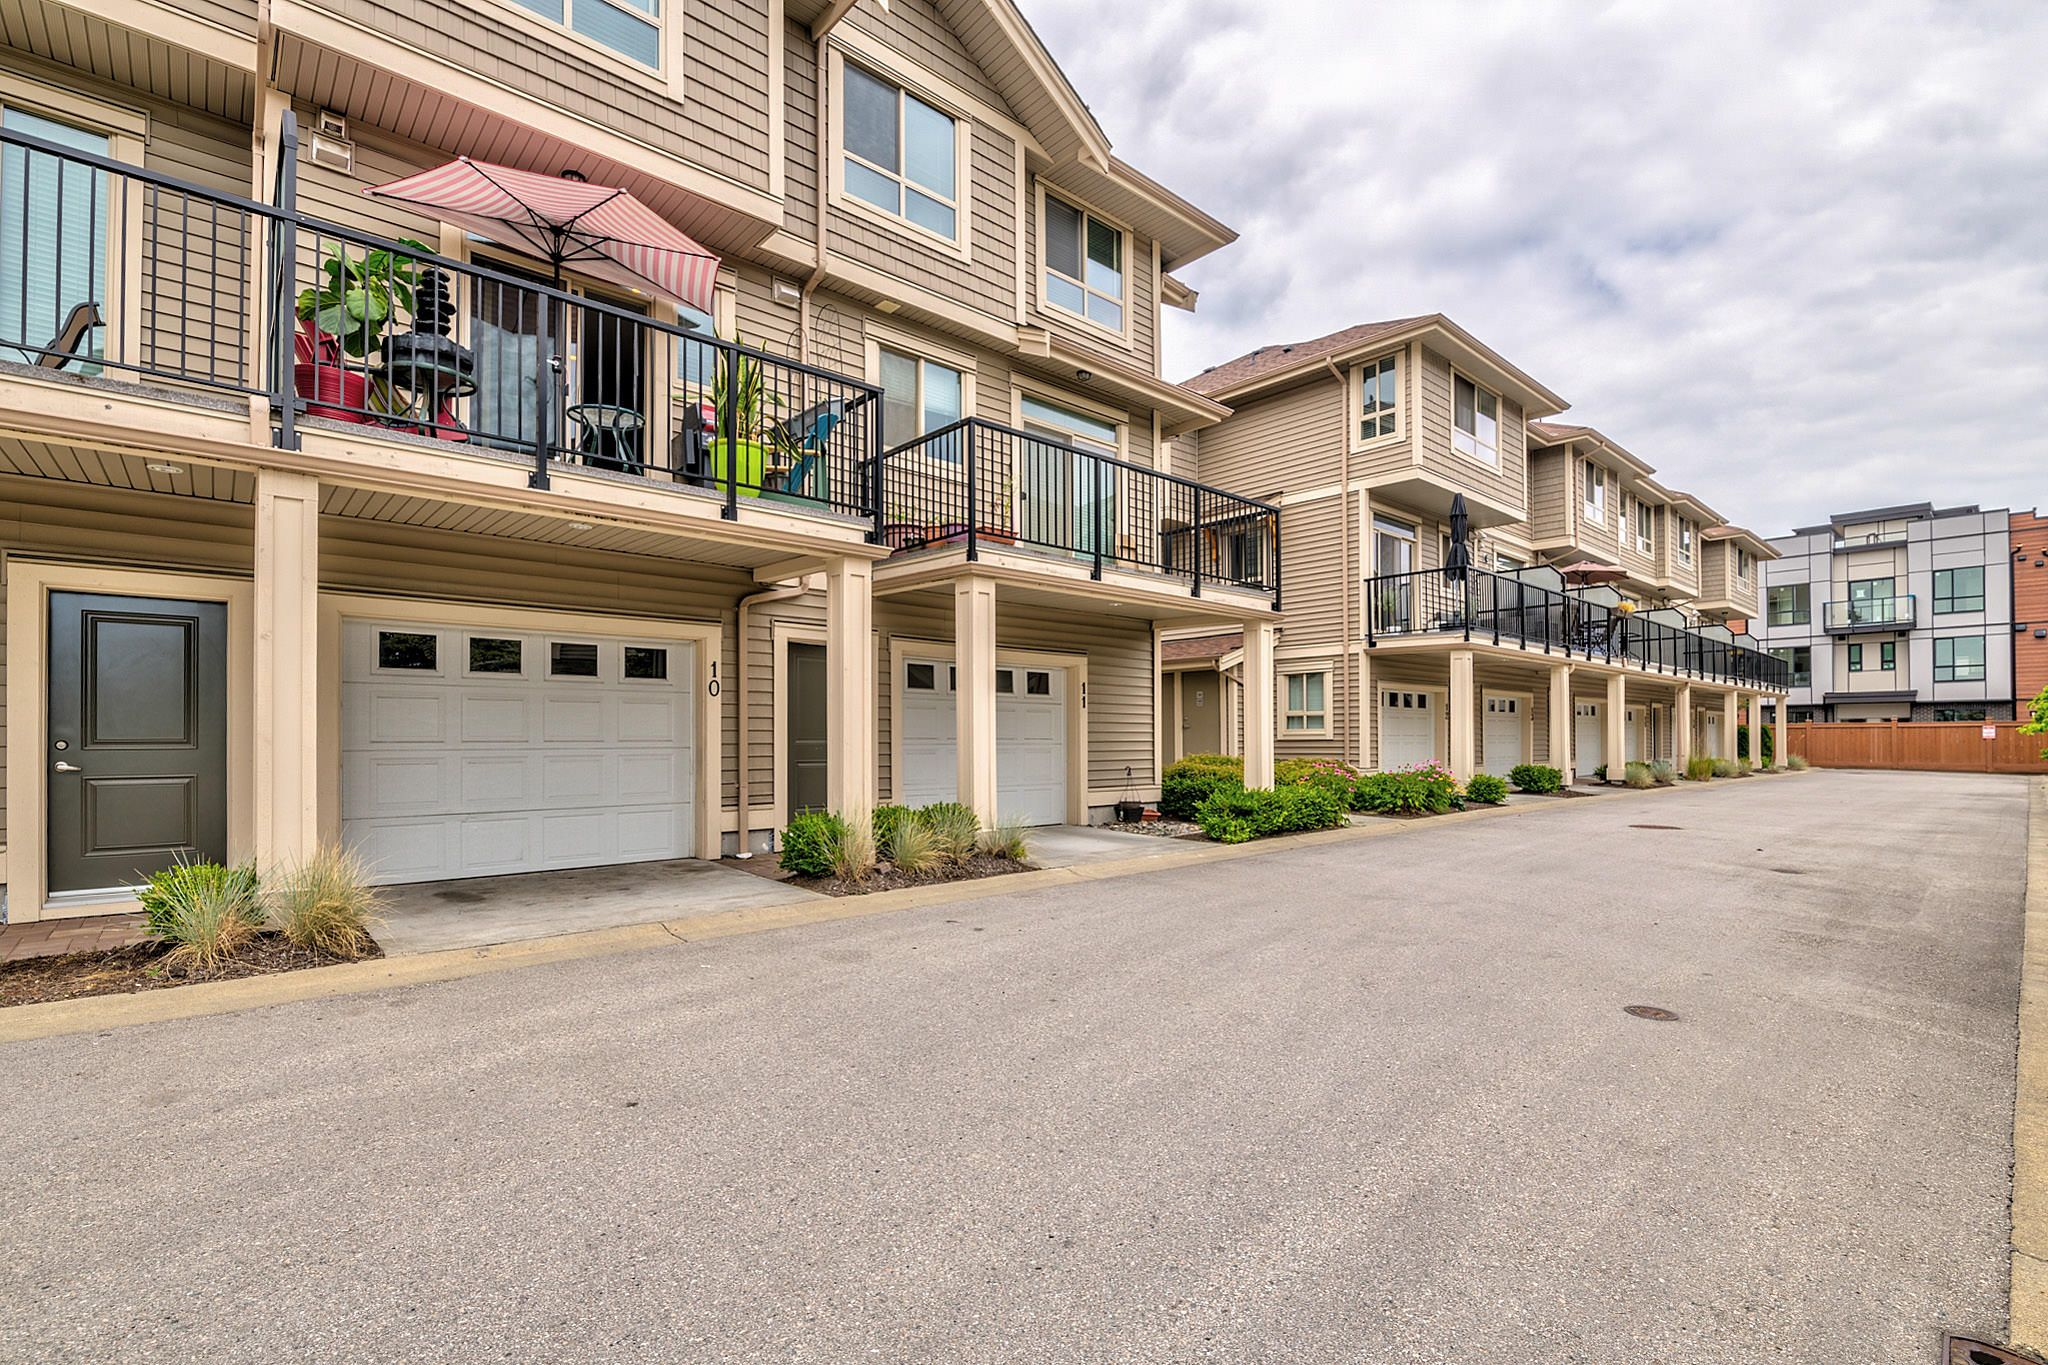 Photo 23: Photos: 10 19742 55A Street in Langley: Langley City Townhouse for sale : MLS®# R2388093